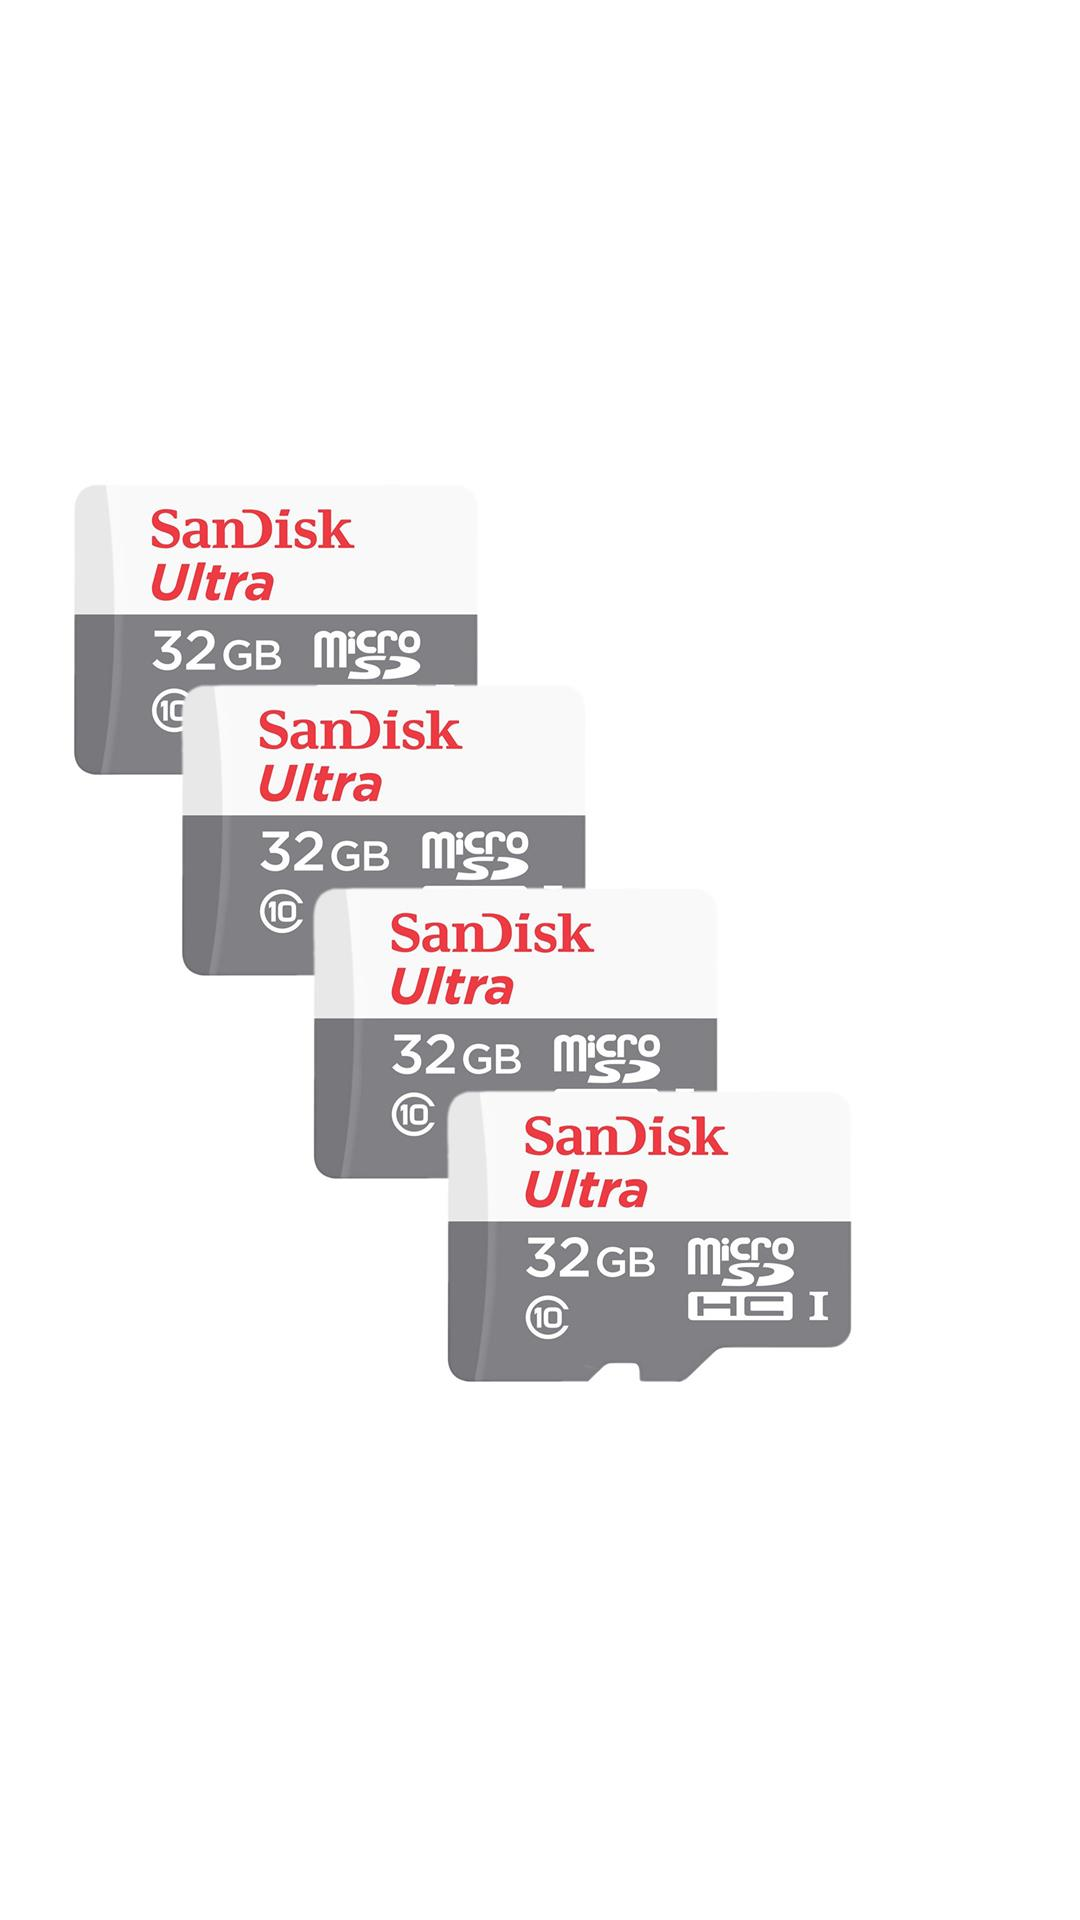 SanDisk Ultra 32 GB Ultra SDHC Class 10 30 MB/s  Memory Card